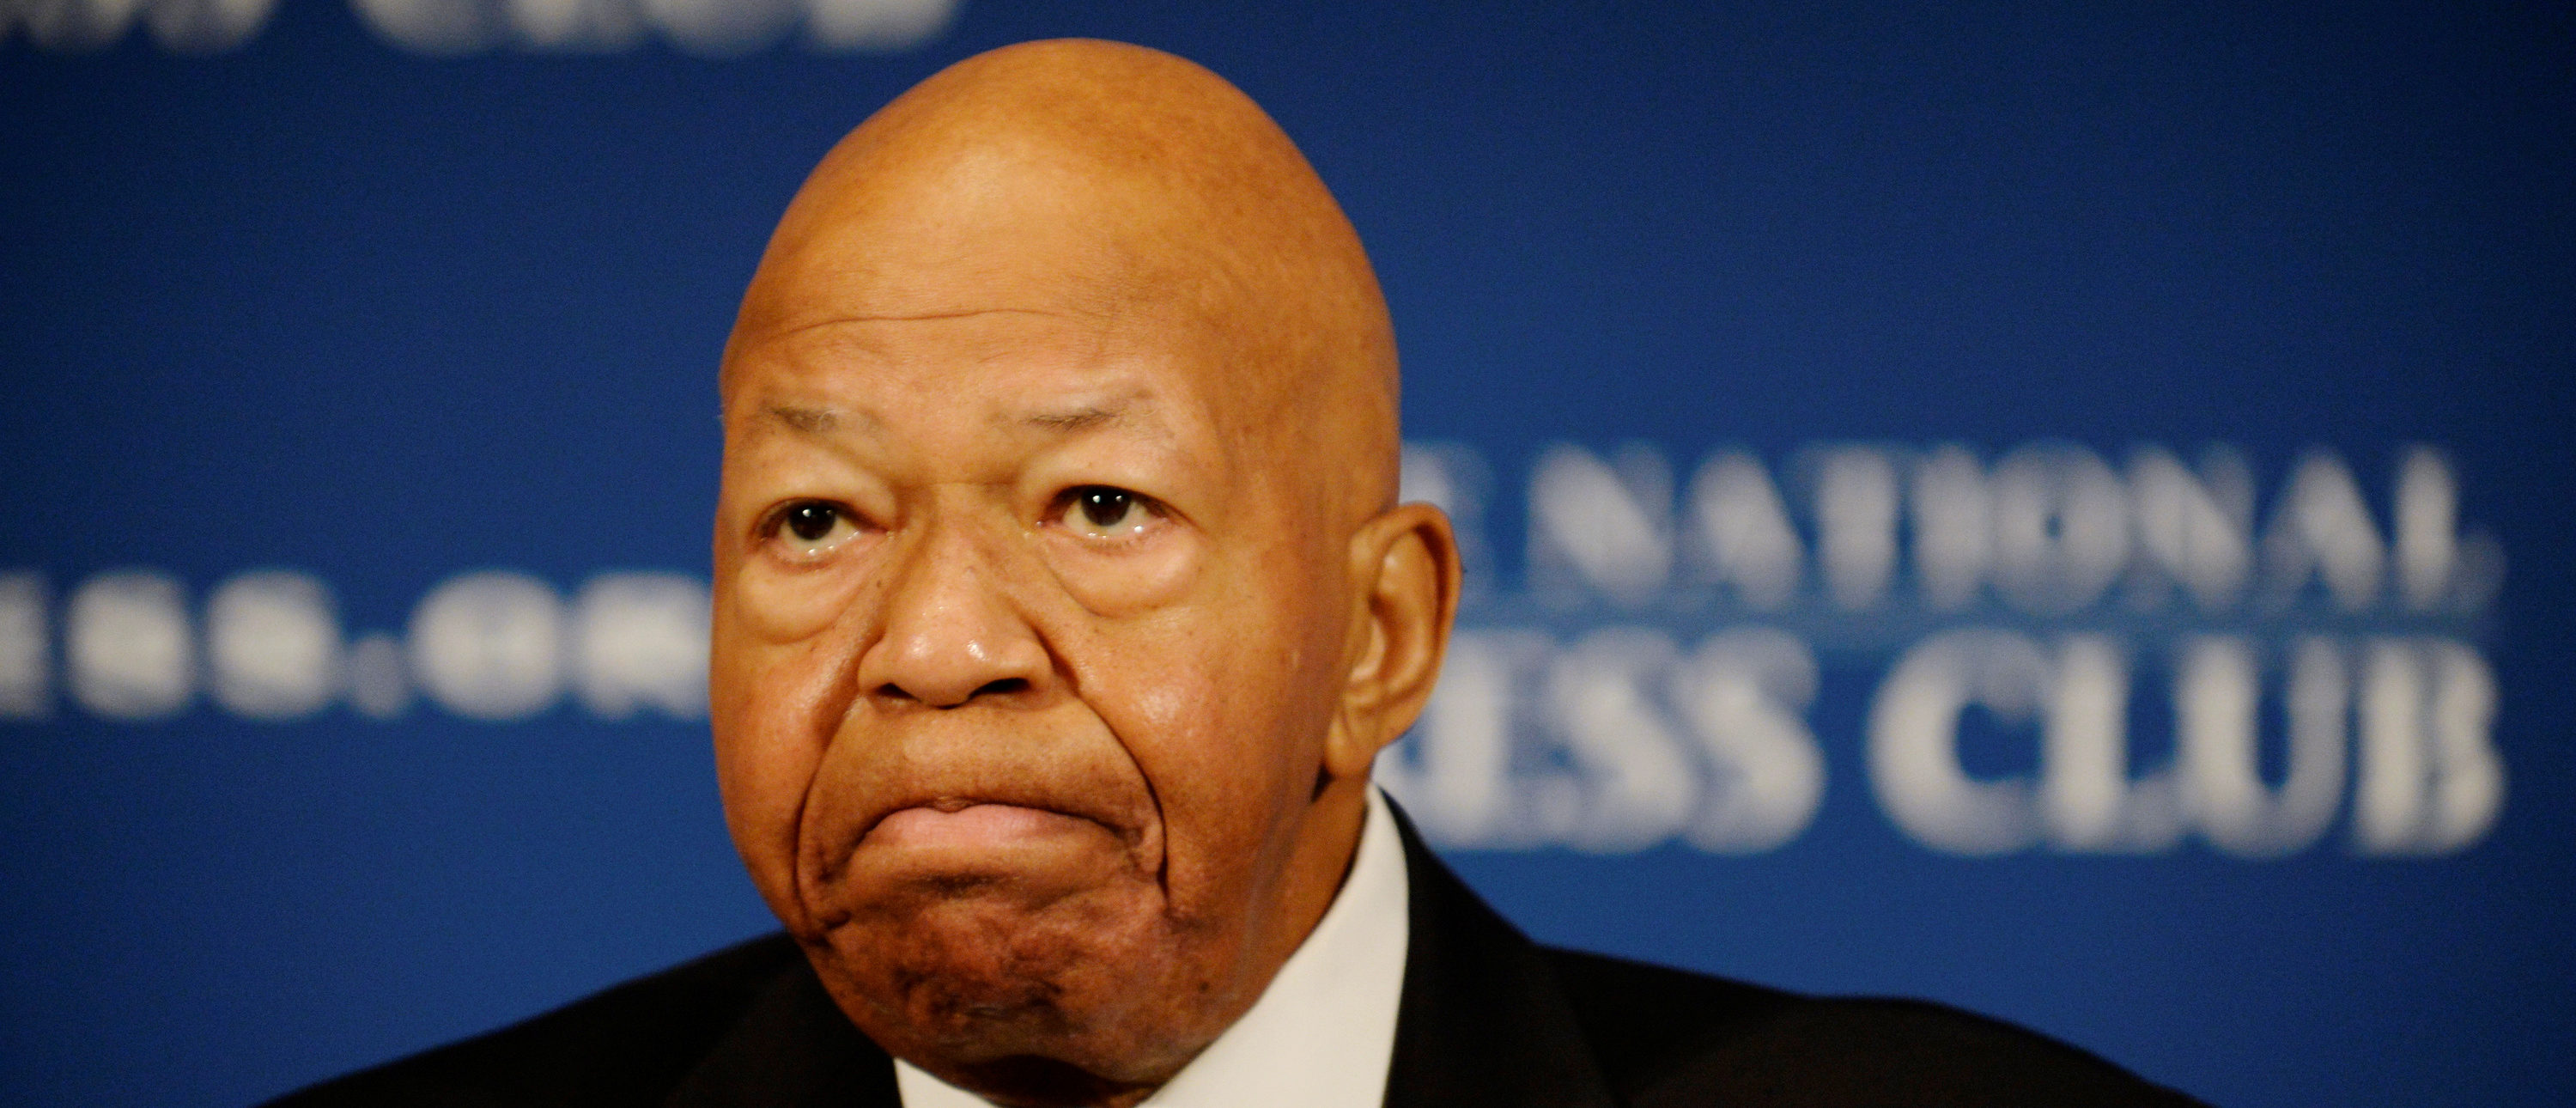 'Politicized Conduct': House Republicans Blast Elijah Cummings' Border Trips